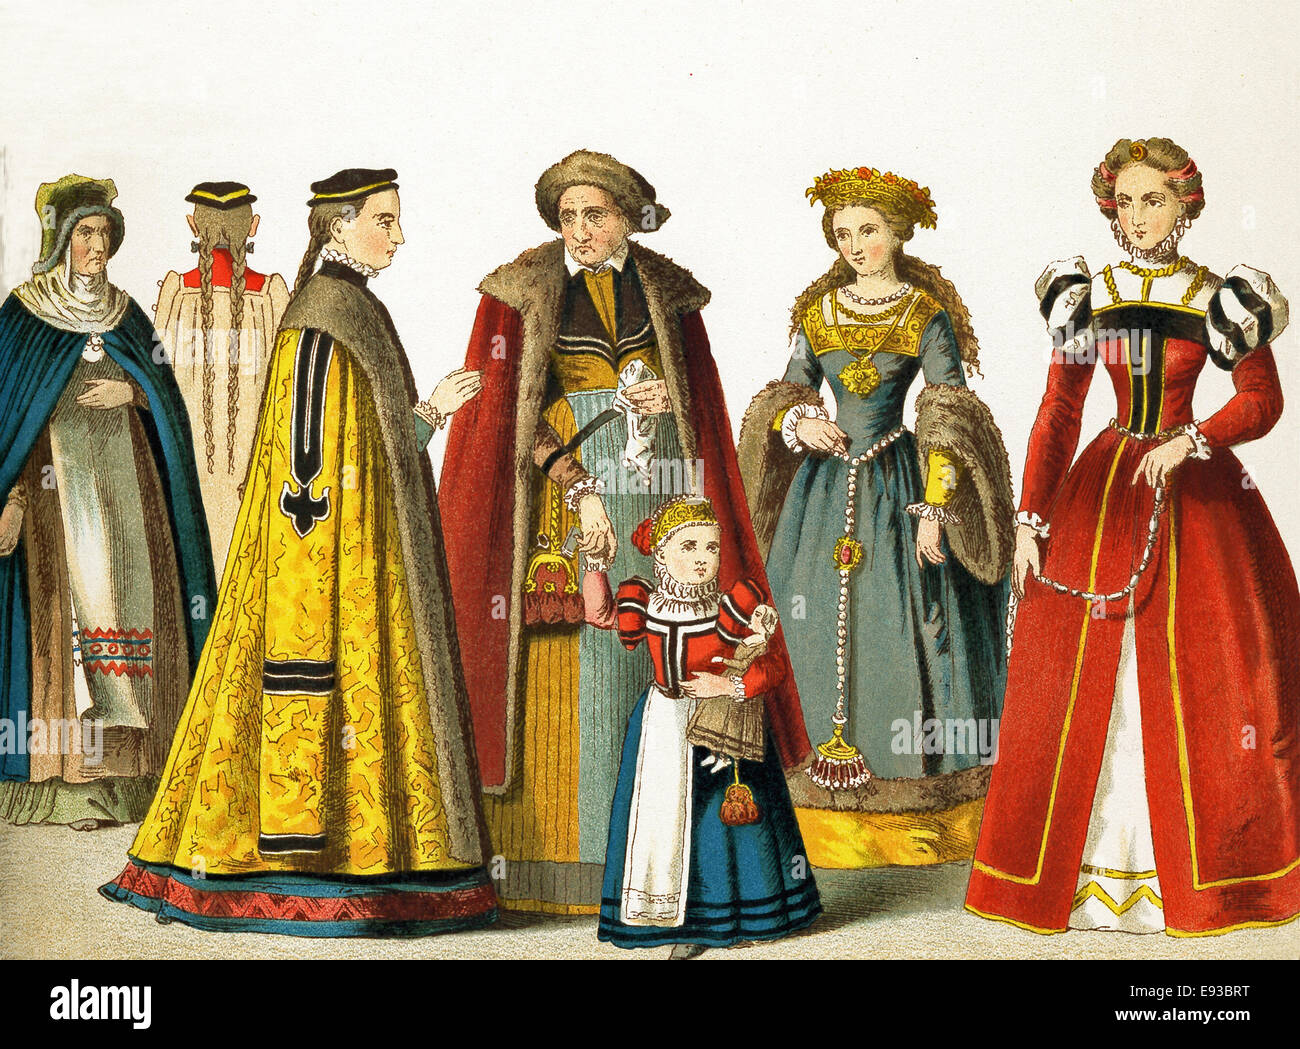 The German women represented here are, from left to right: woman from Bohemia, woman from Nuremberg, woman and child - Stock Image